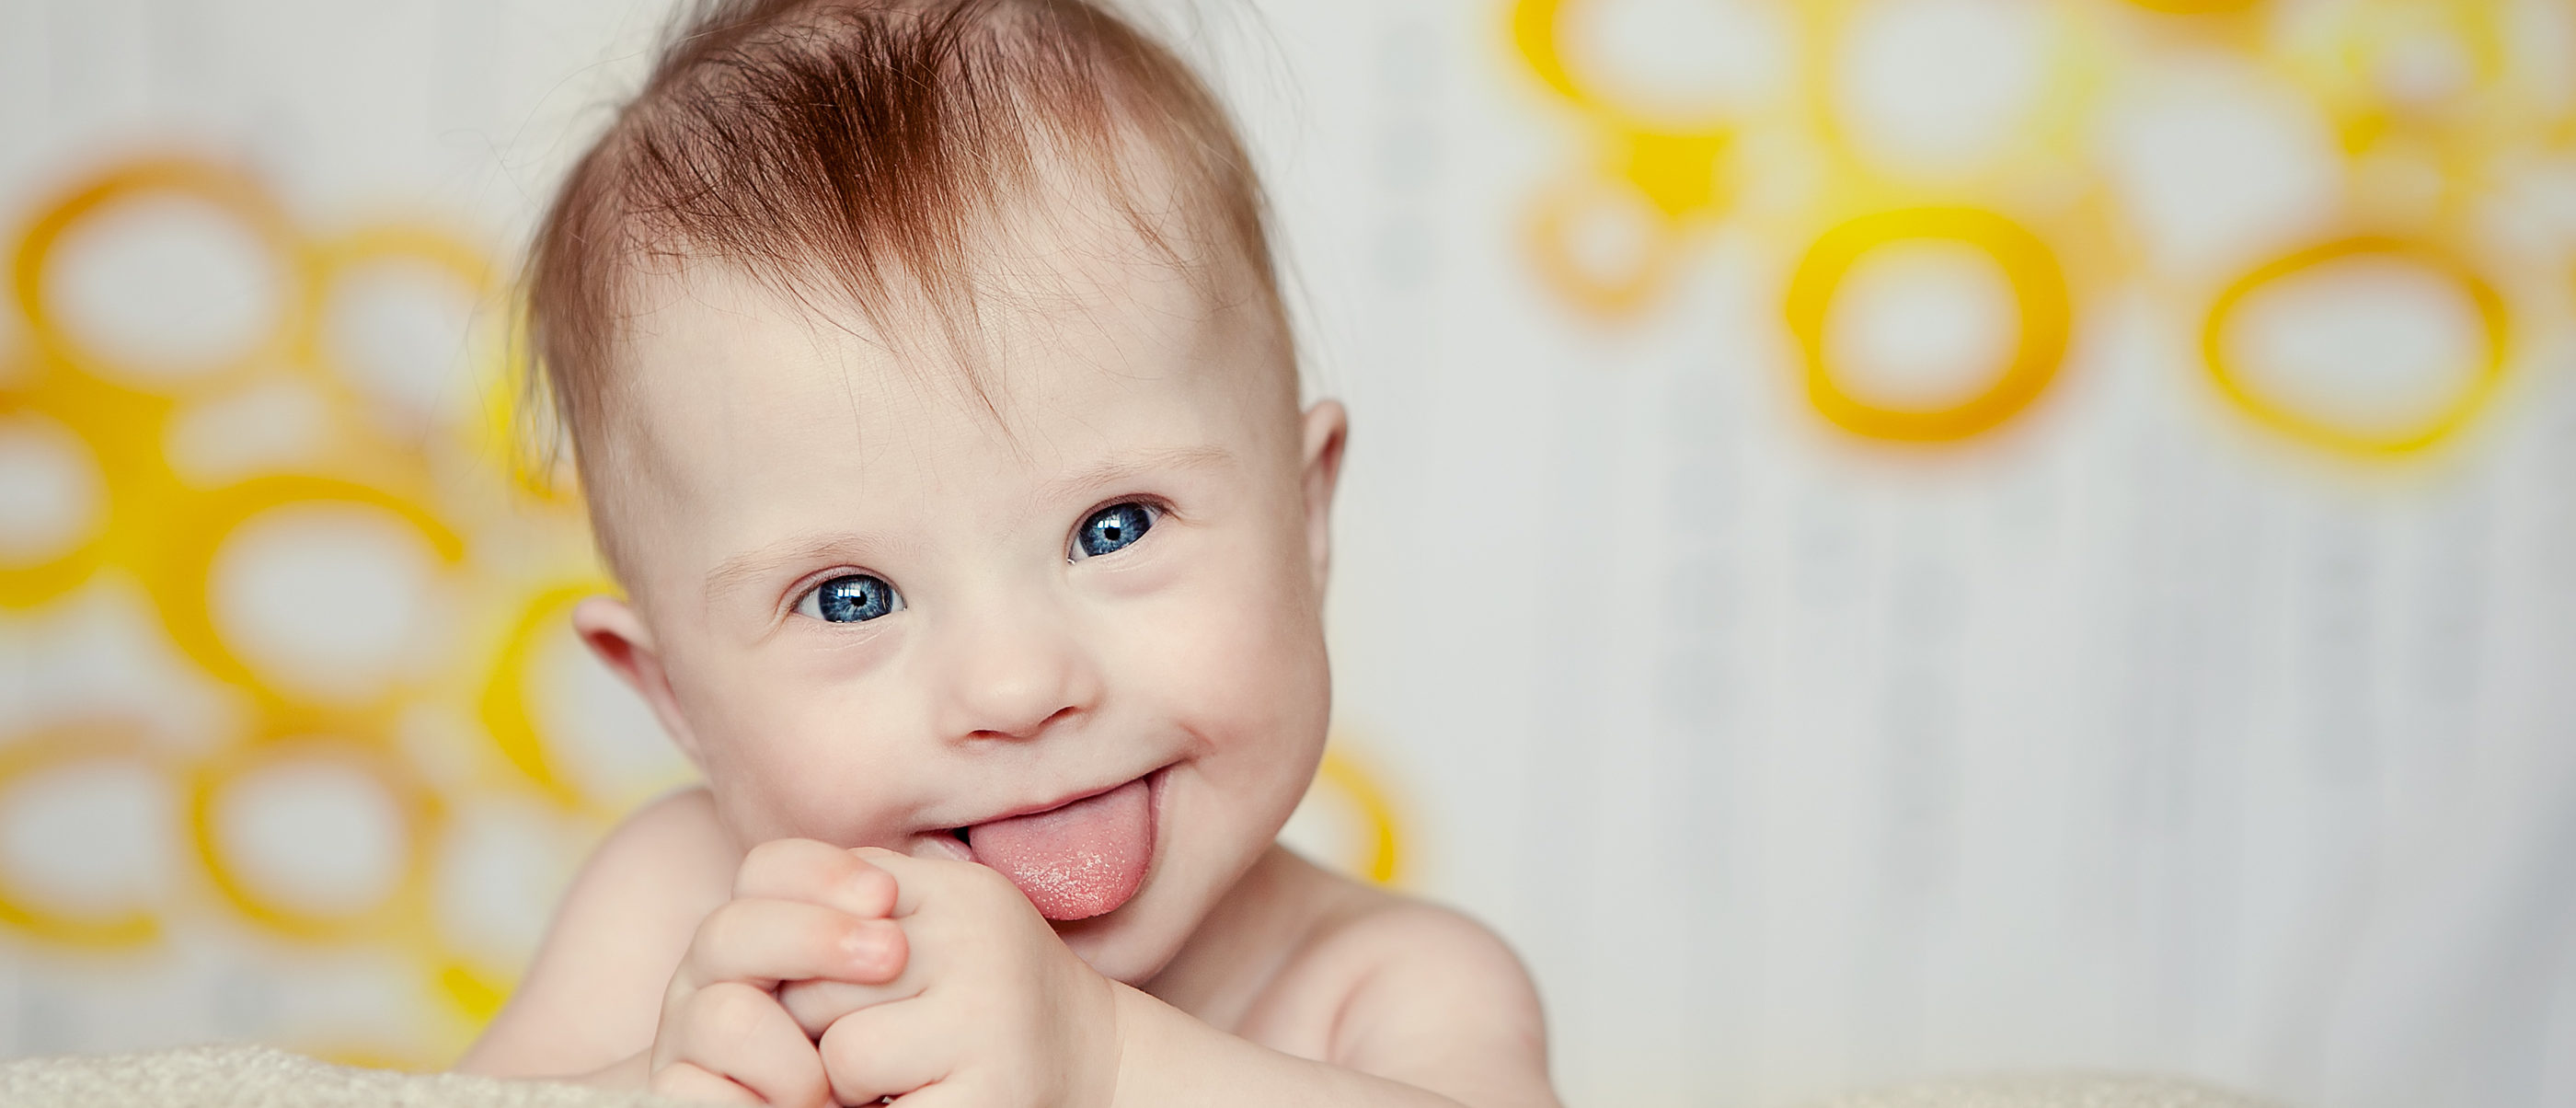 Cheerful baby with Down Syndrome. (Shutterstock/Eleonora_os)